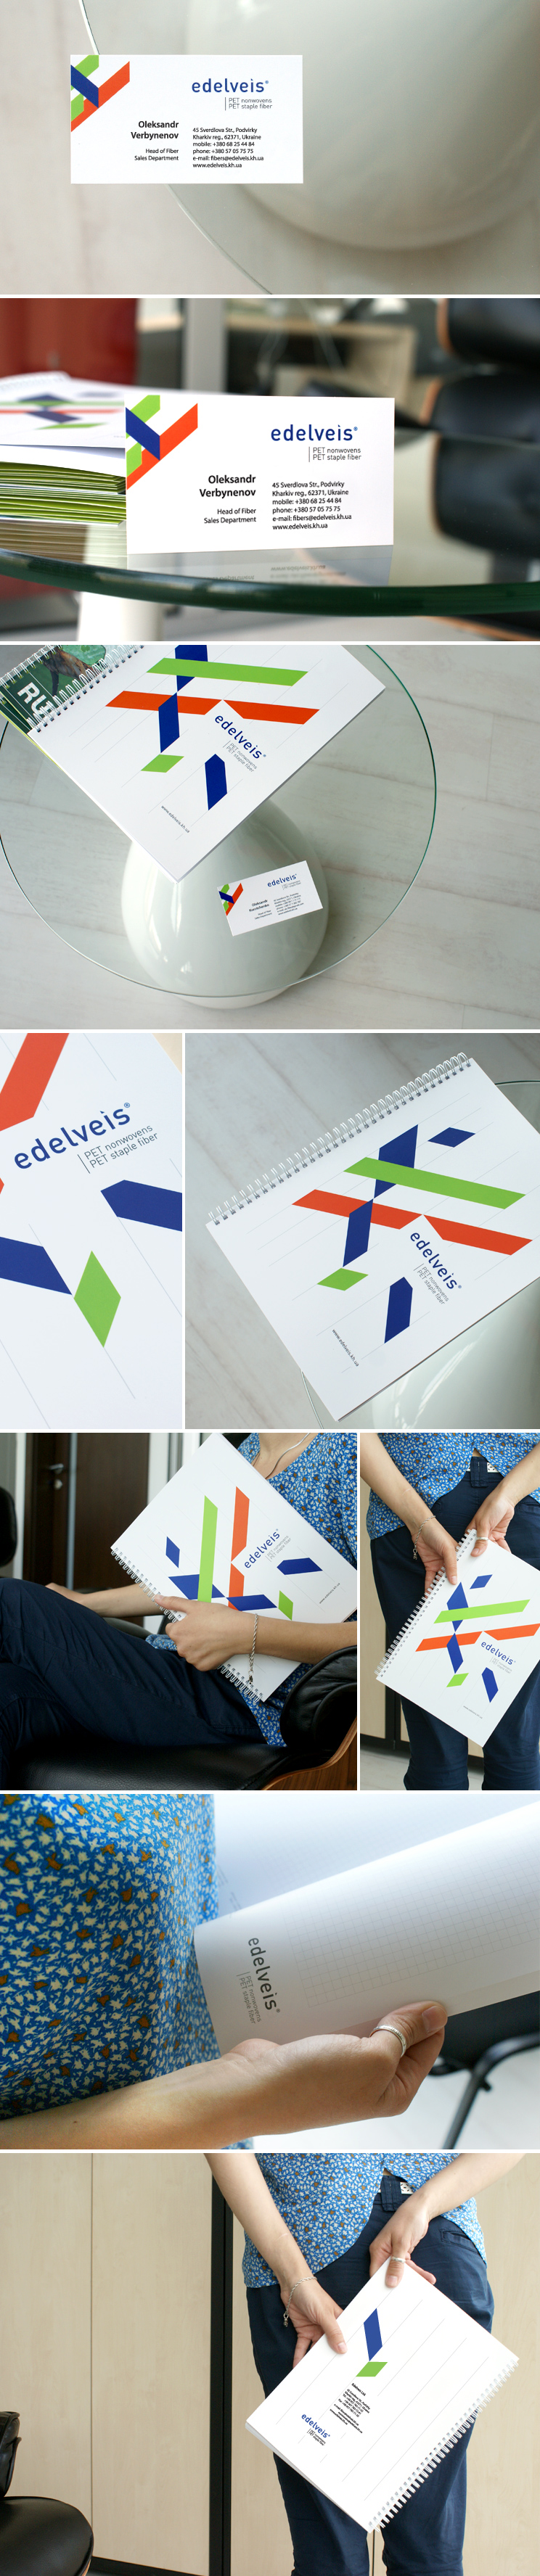 notebook Edelveis